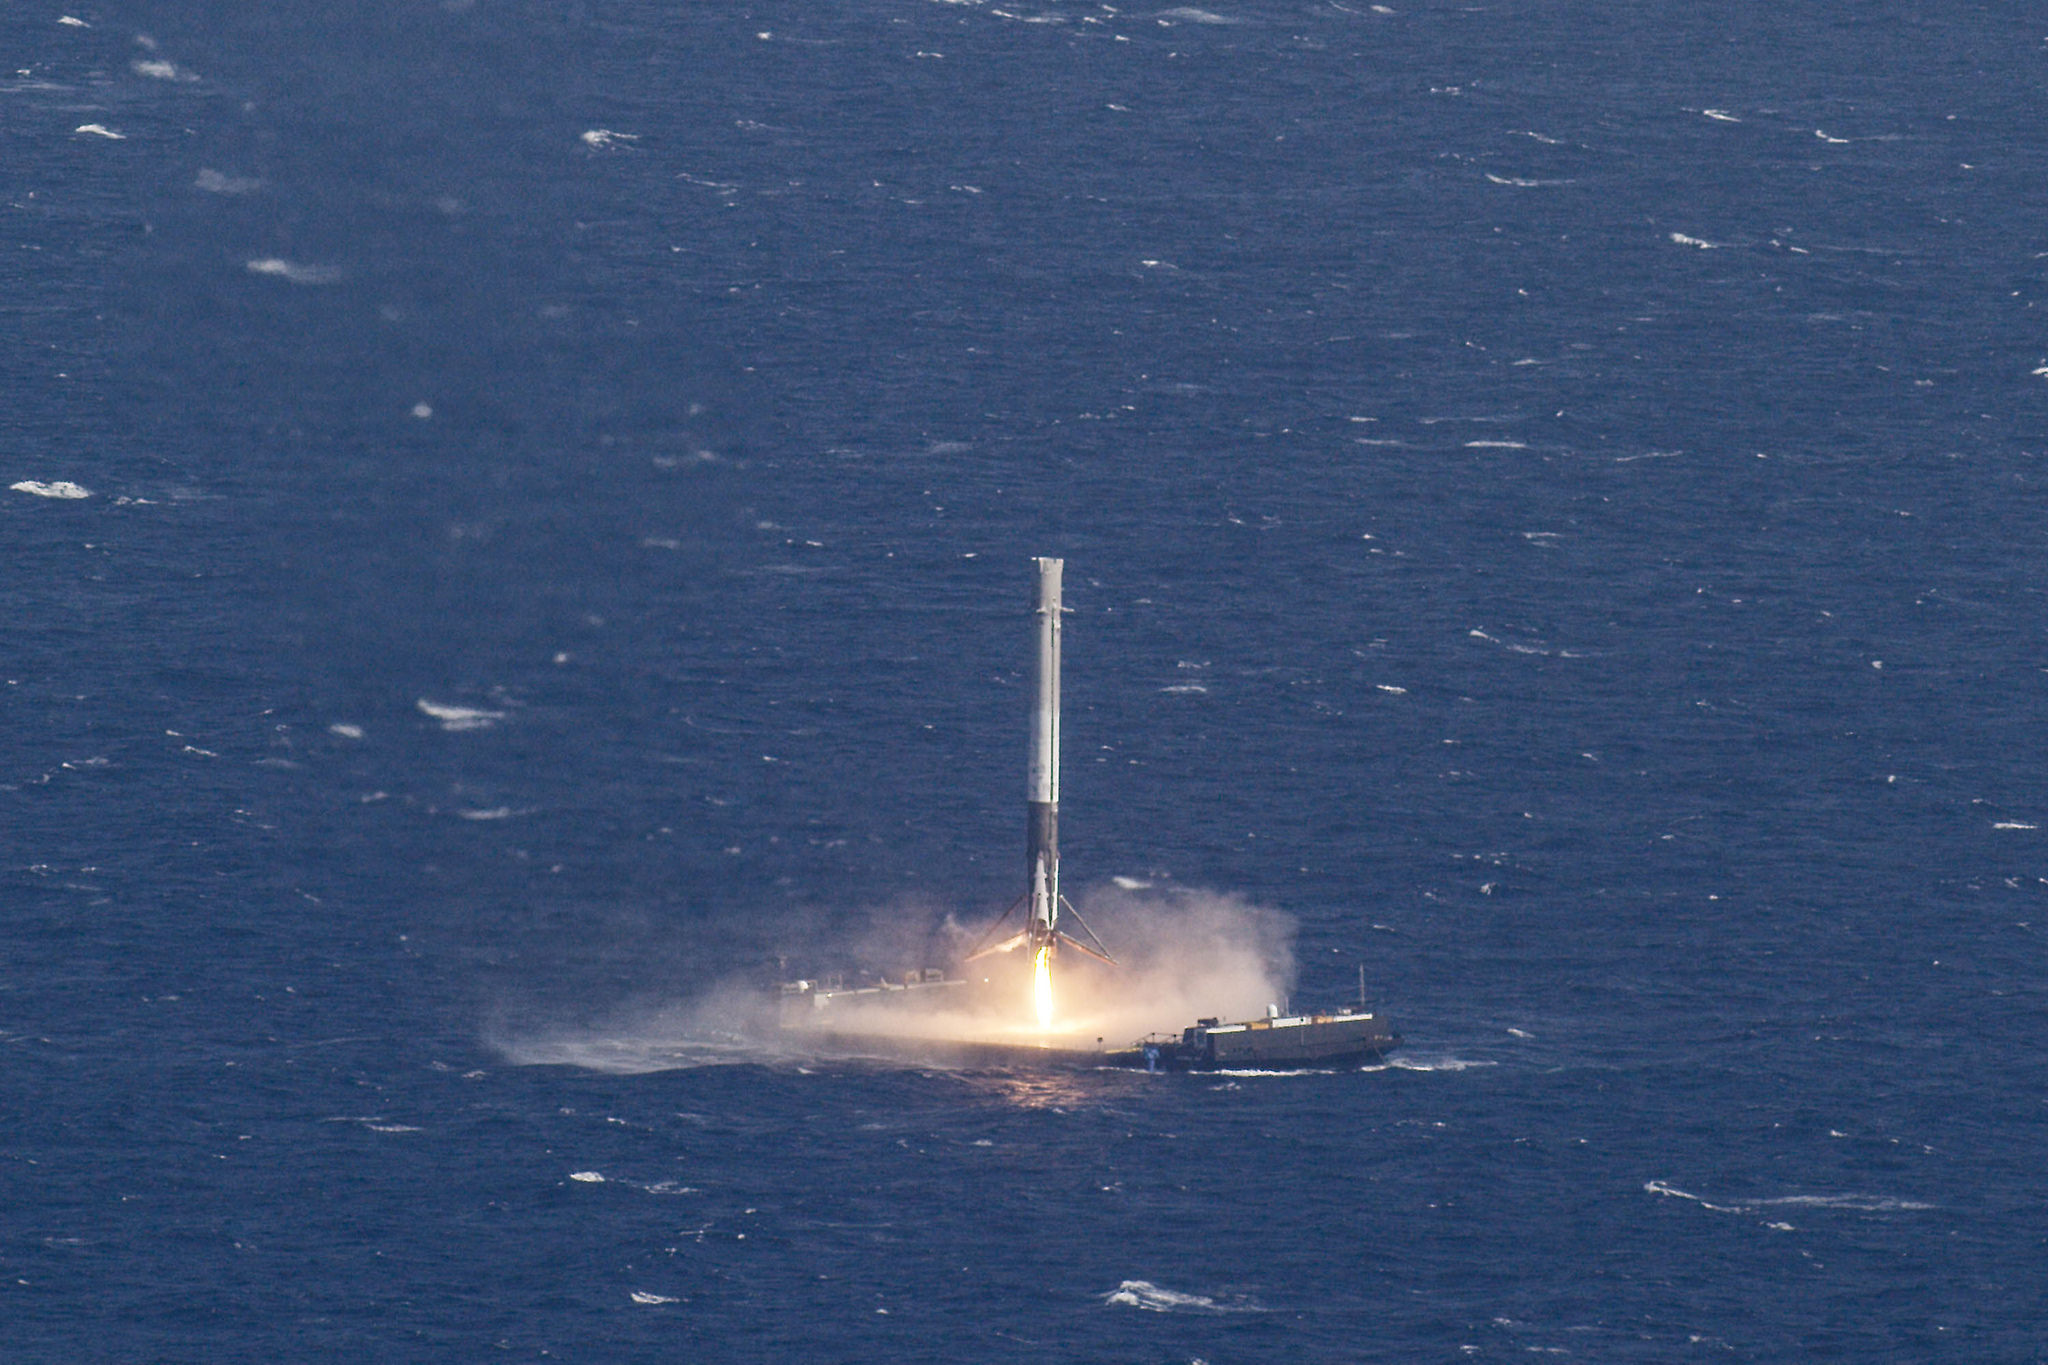 SpaceX's Dragon Soars As Its Rocket Lands: An Epic Spaceflight in Photos